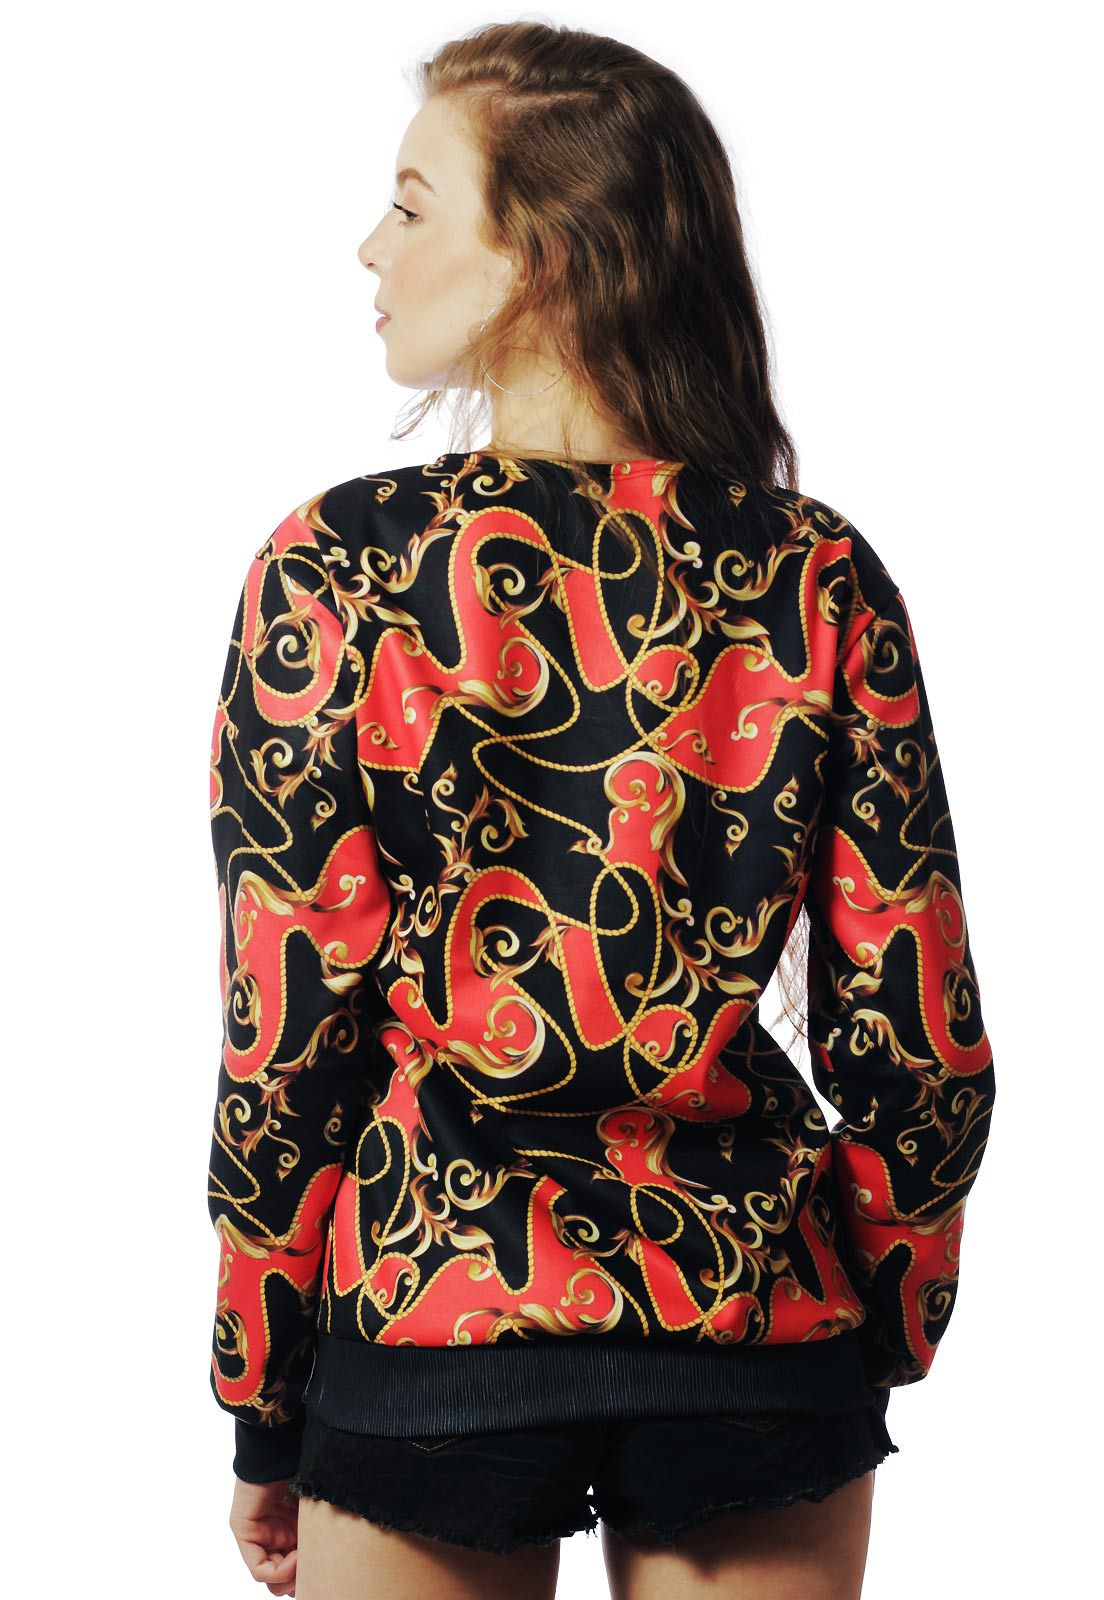 Blusa Moletom Barroco Estampado ElephunK Full Print Unissex Red